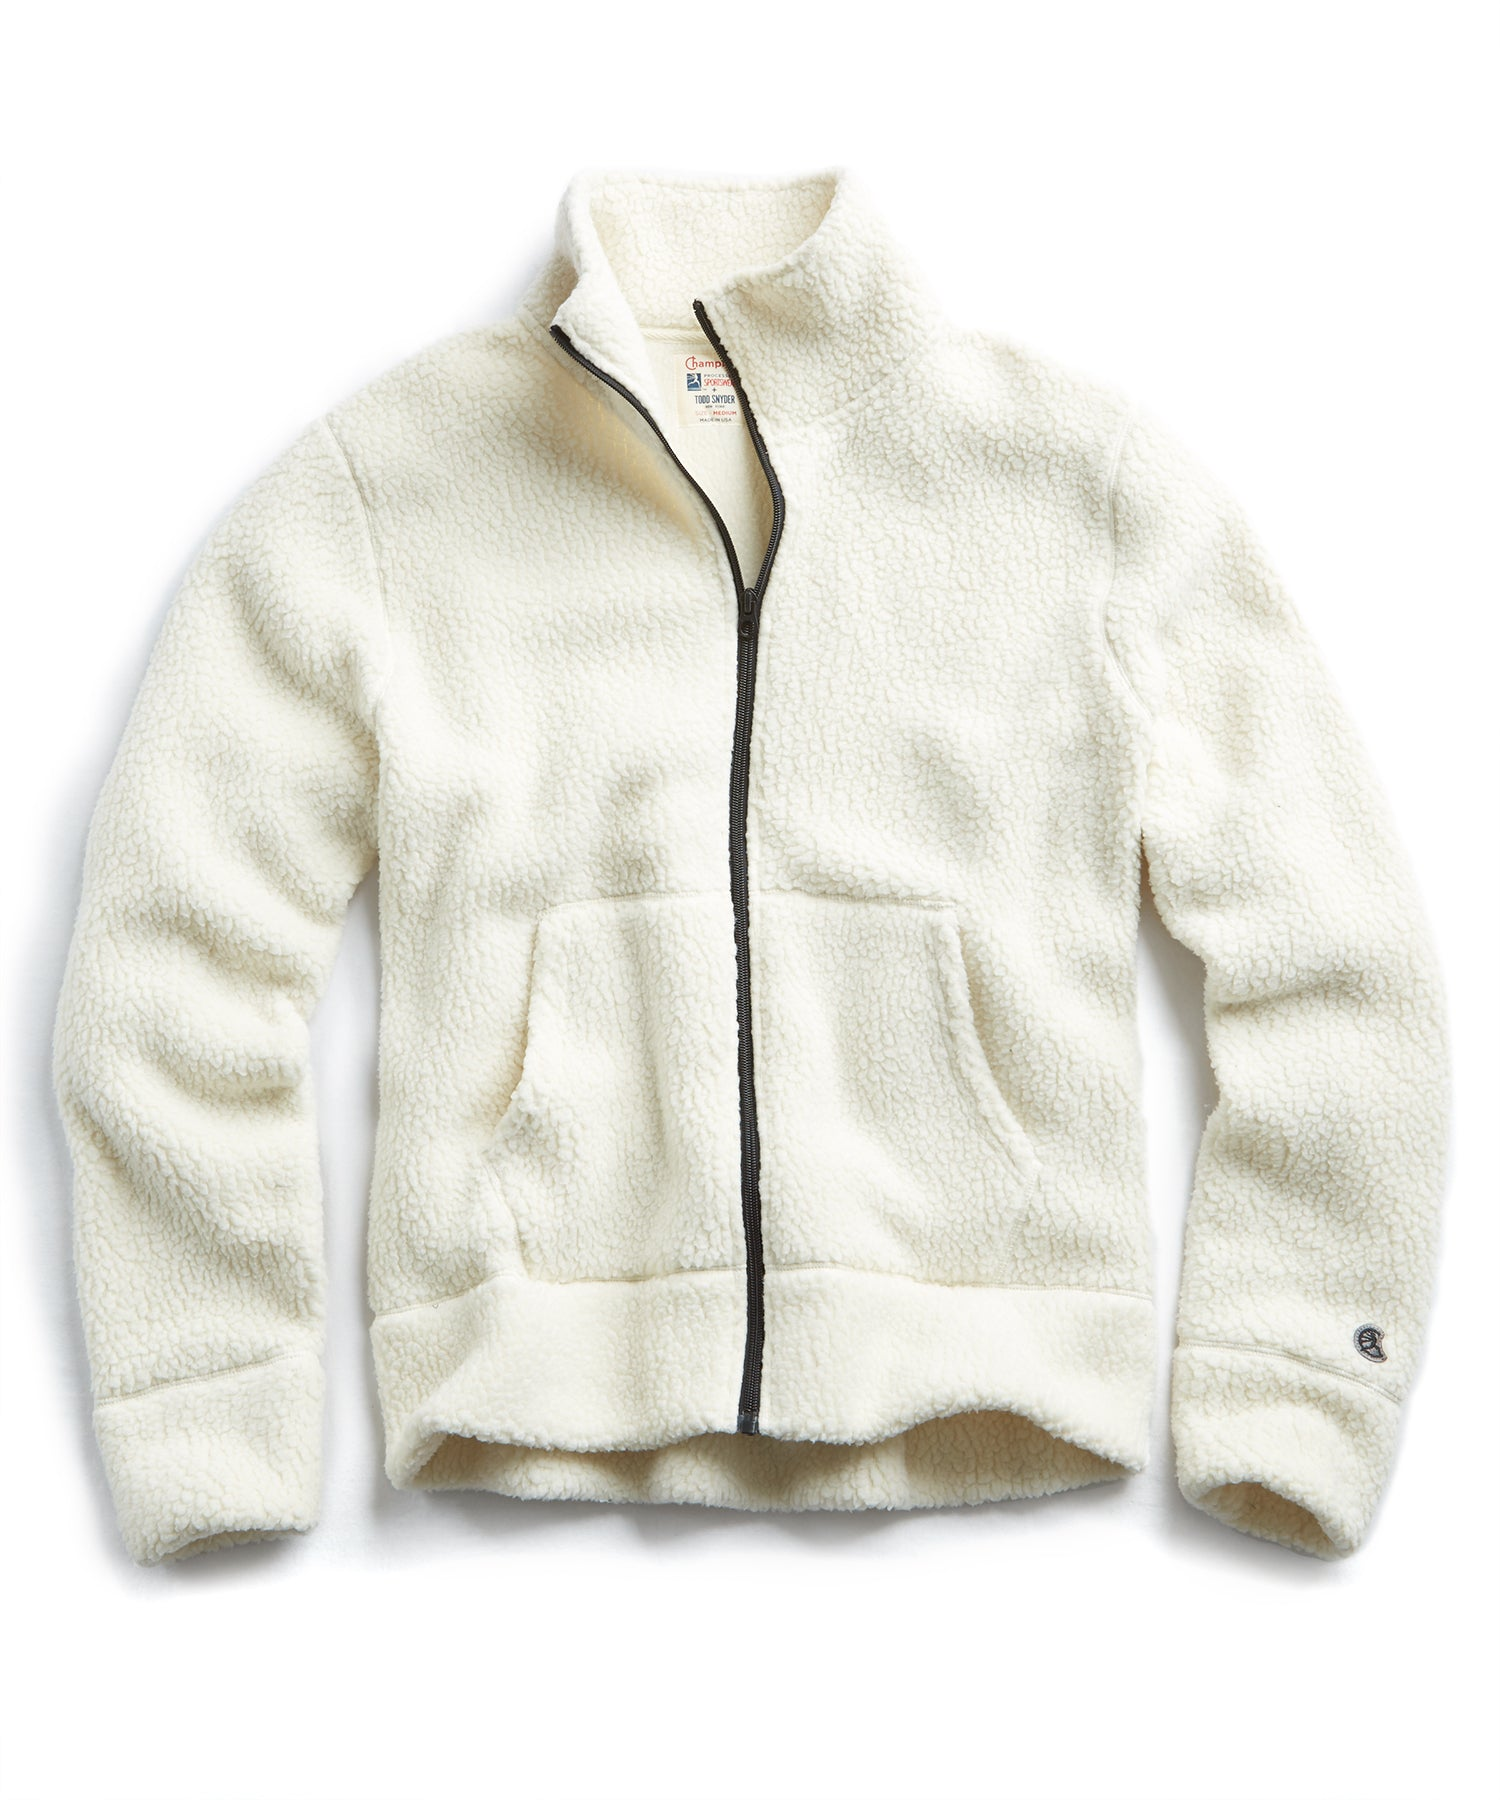 Polartec Fullzip Jacket in Cream